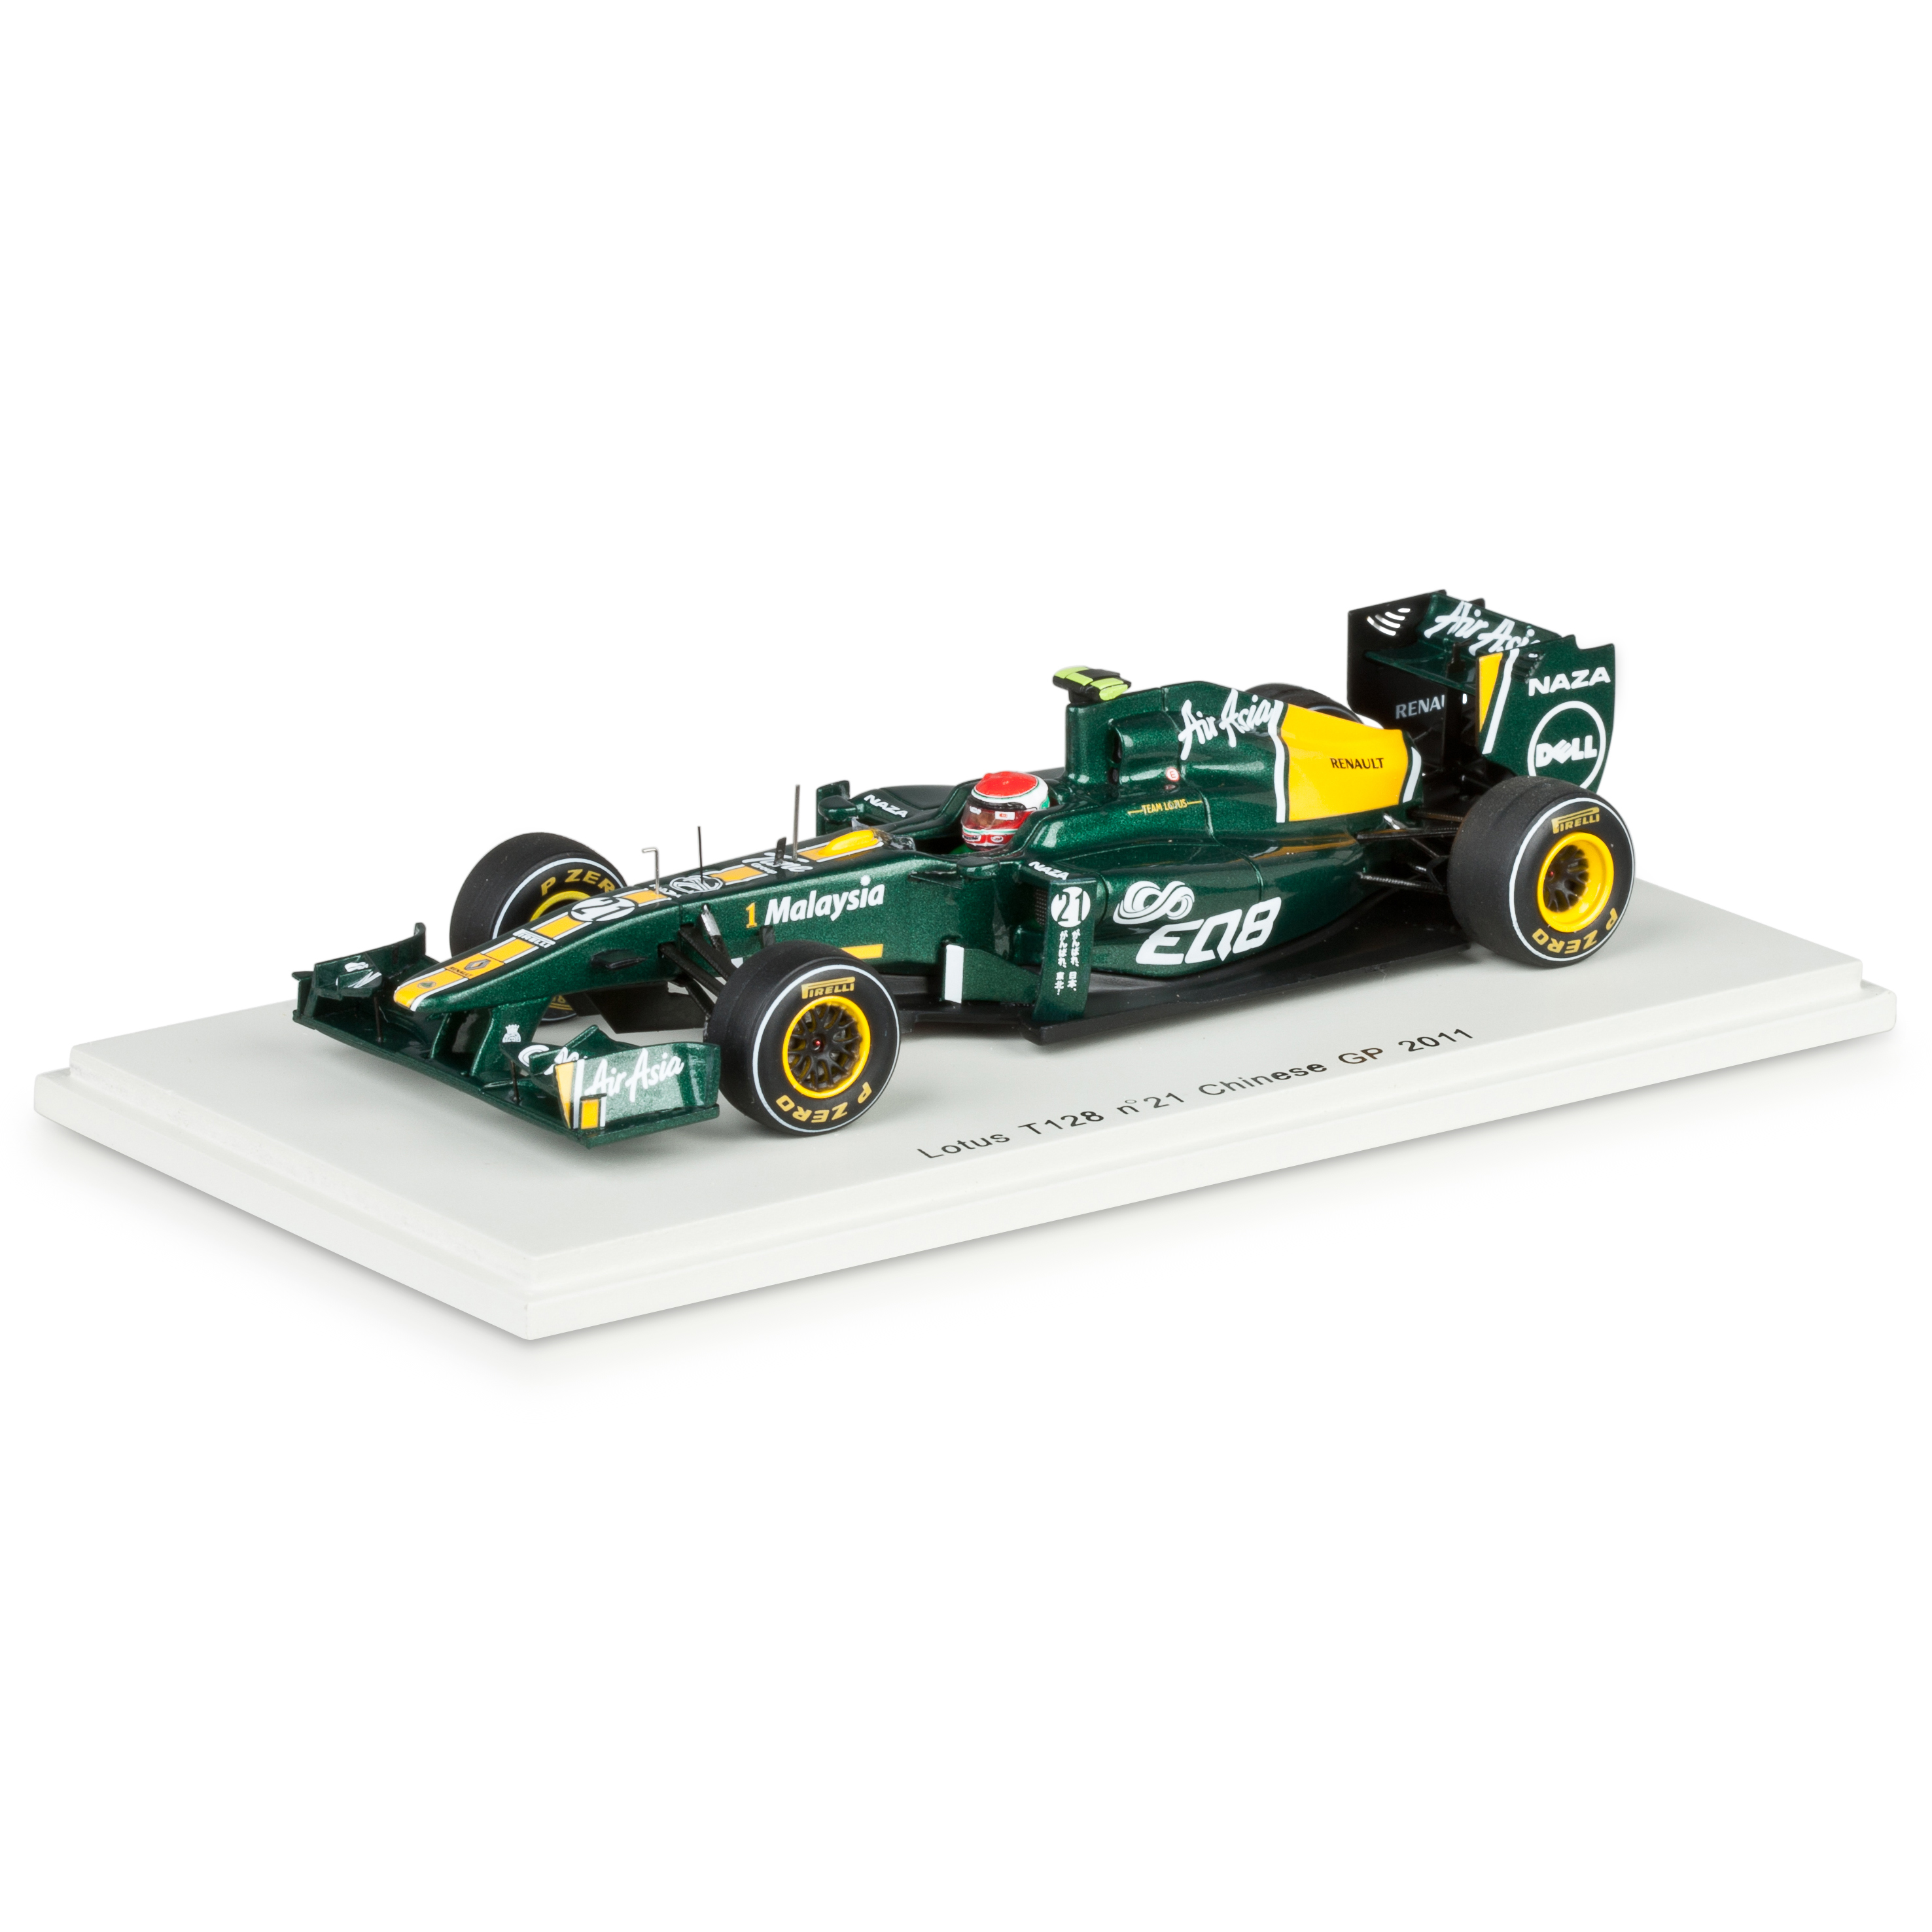 Lotus F1 Lotus T128 2011 J.Trulli No.21 1:43 Scale